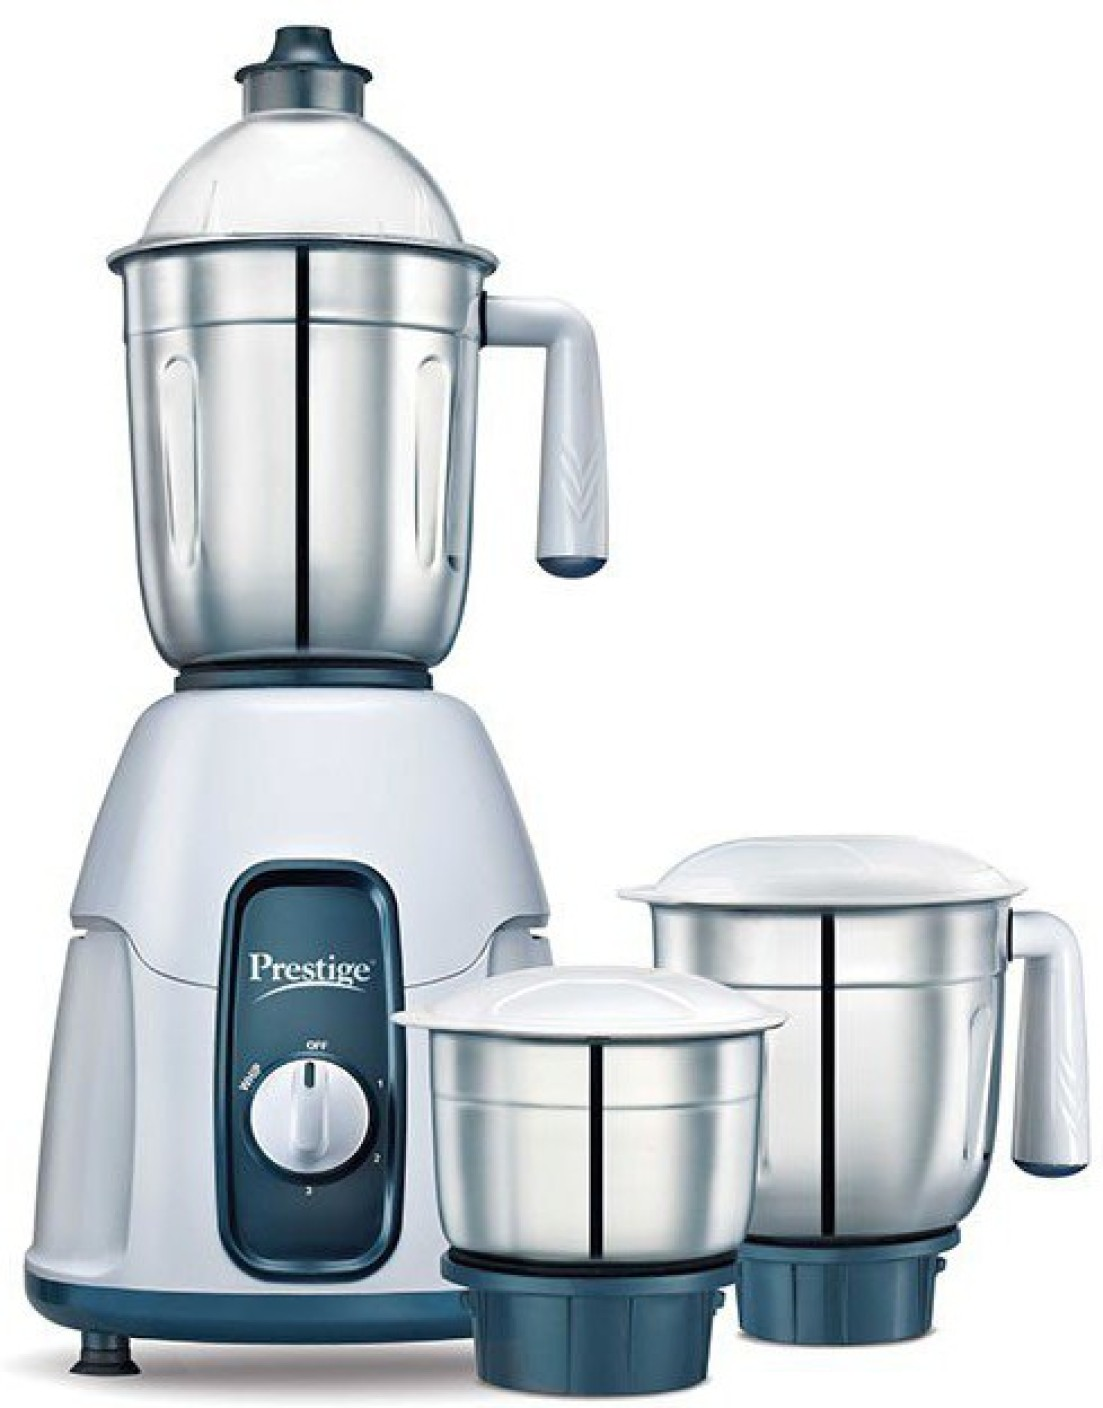 Prestige Kitchen Appliances Prestige Stylo 750 750 W Mixer Grinder Price In India Buy